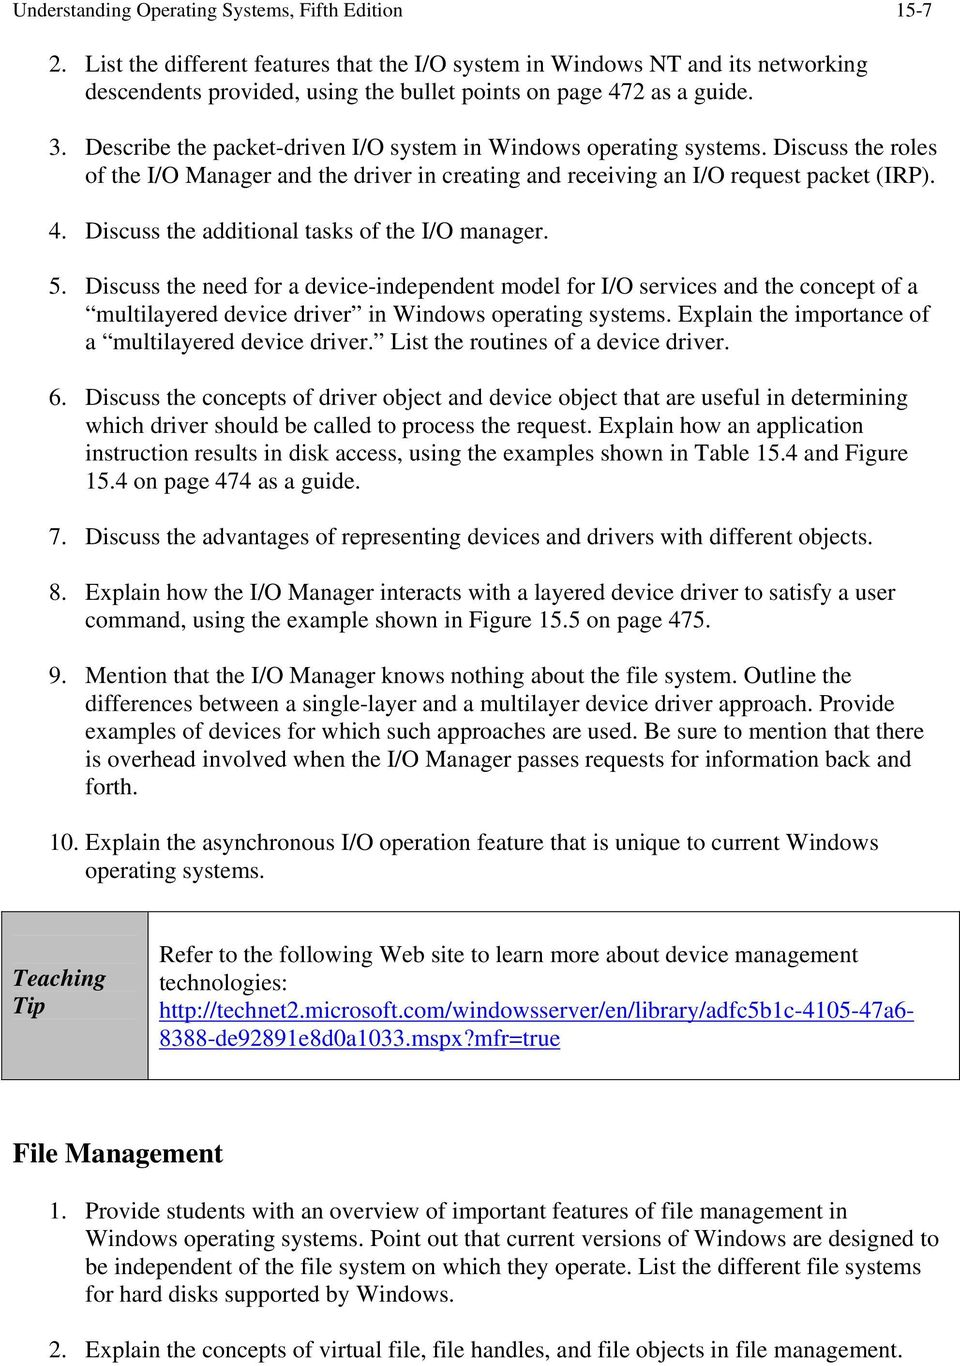 Chapter 15 Windows Operating Systems - PDF